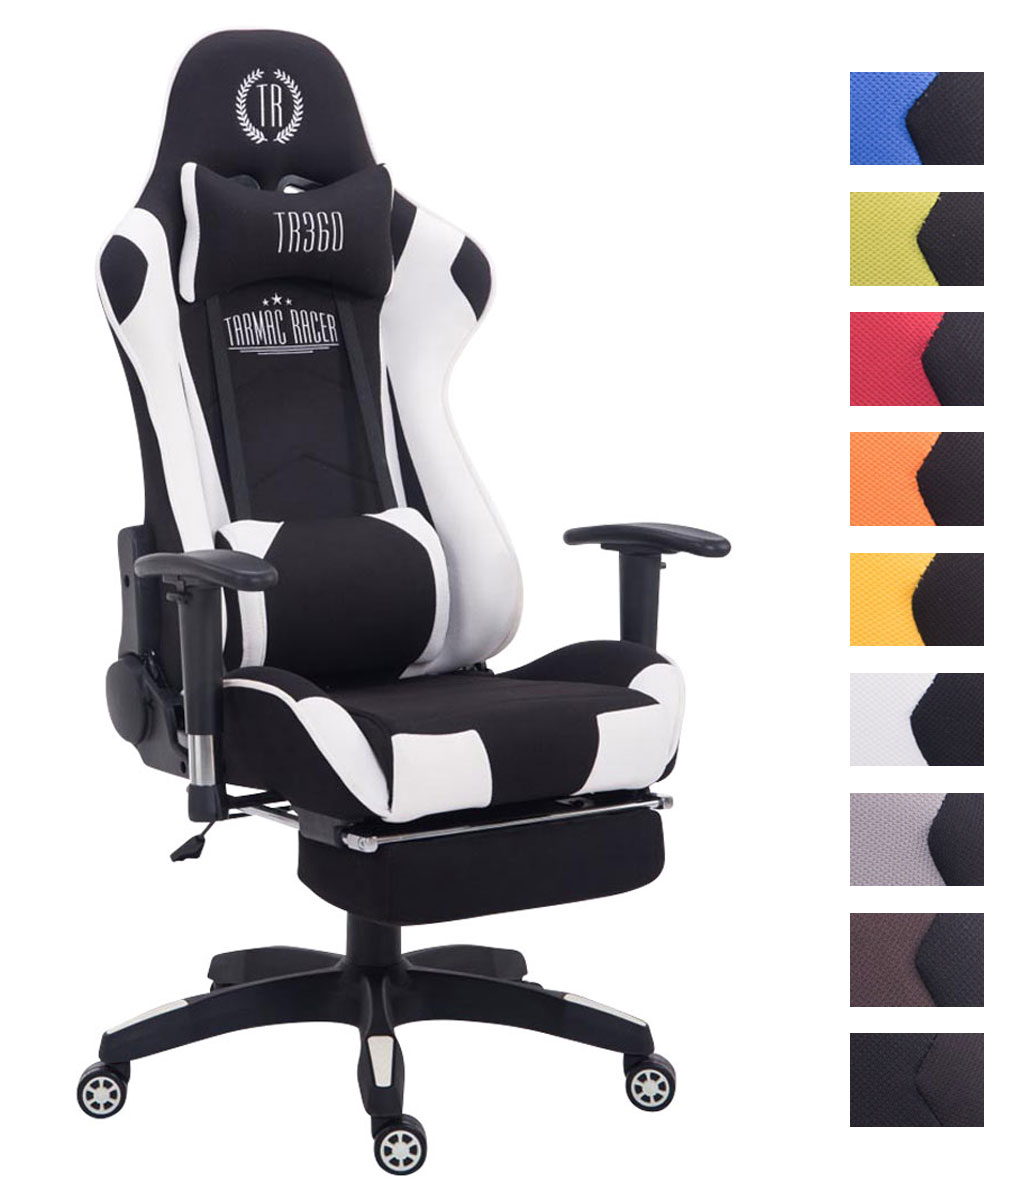 xl racing b rostuhl turbo stoff gaming drehstuhl 150 kg belastbar chefsessel eur 159 90. Black Bedroom Furniture Sets. Home Design Ideas